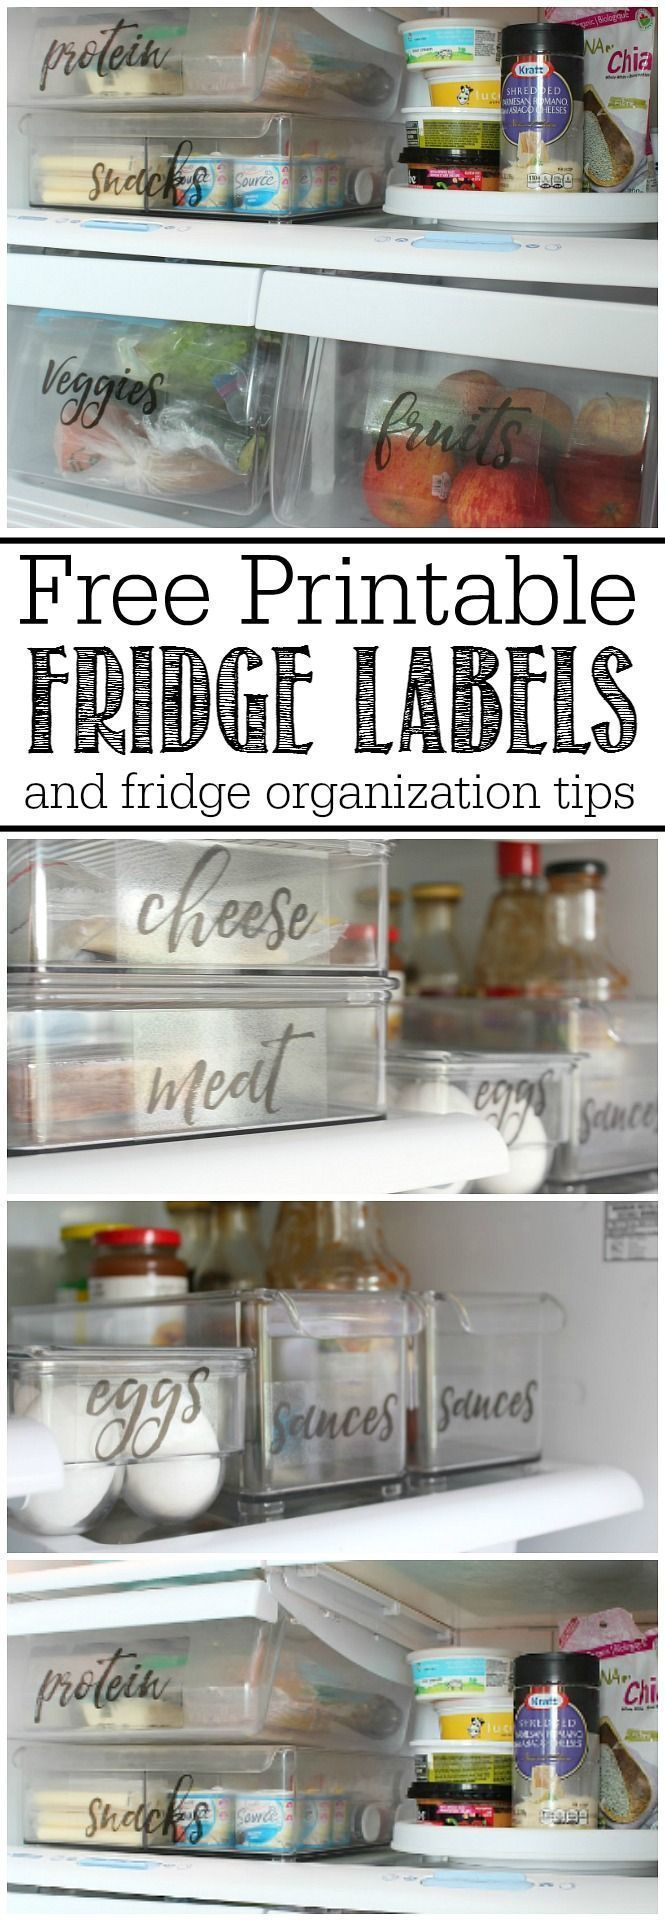 These Free Printable Fridge Labels And Fridge Organization Ideas Will Help  You Get Your Fridge Organized